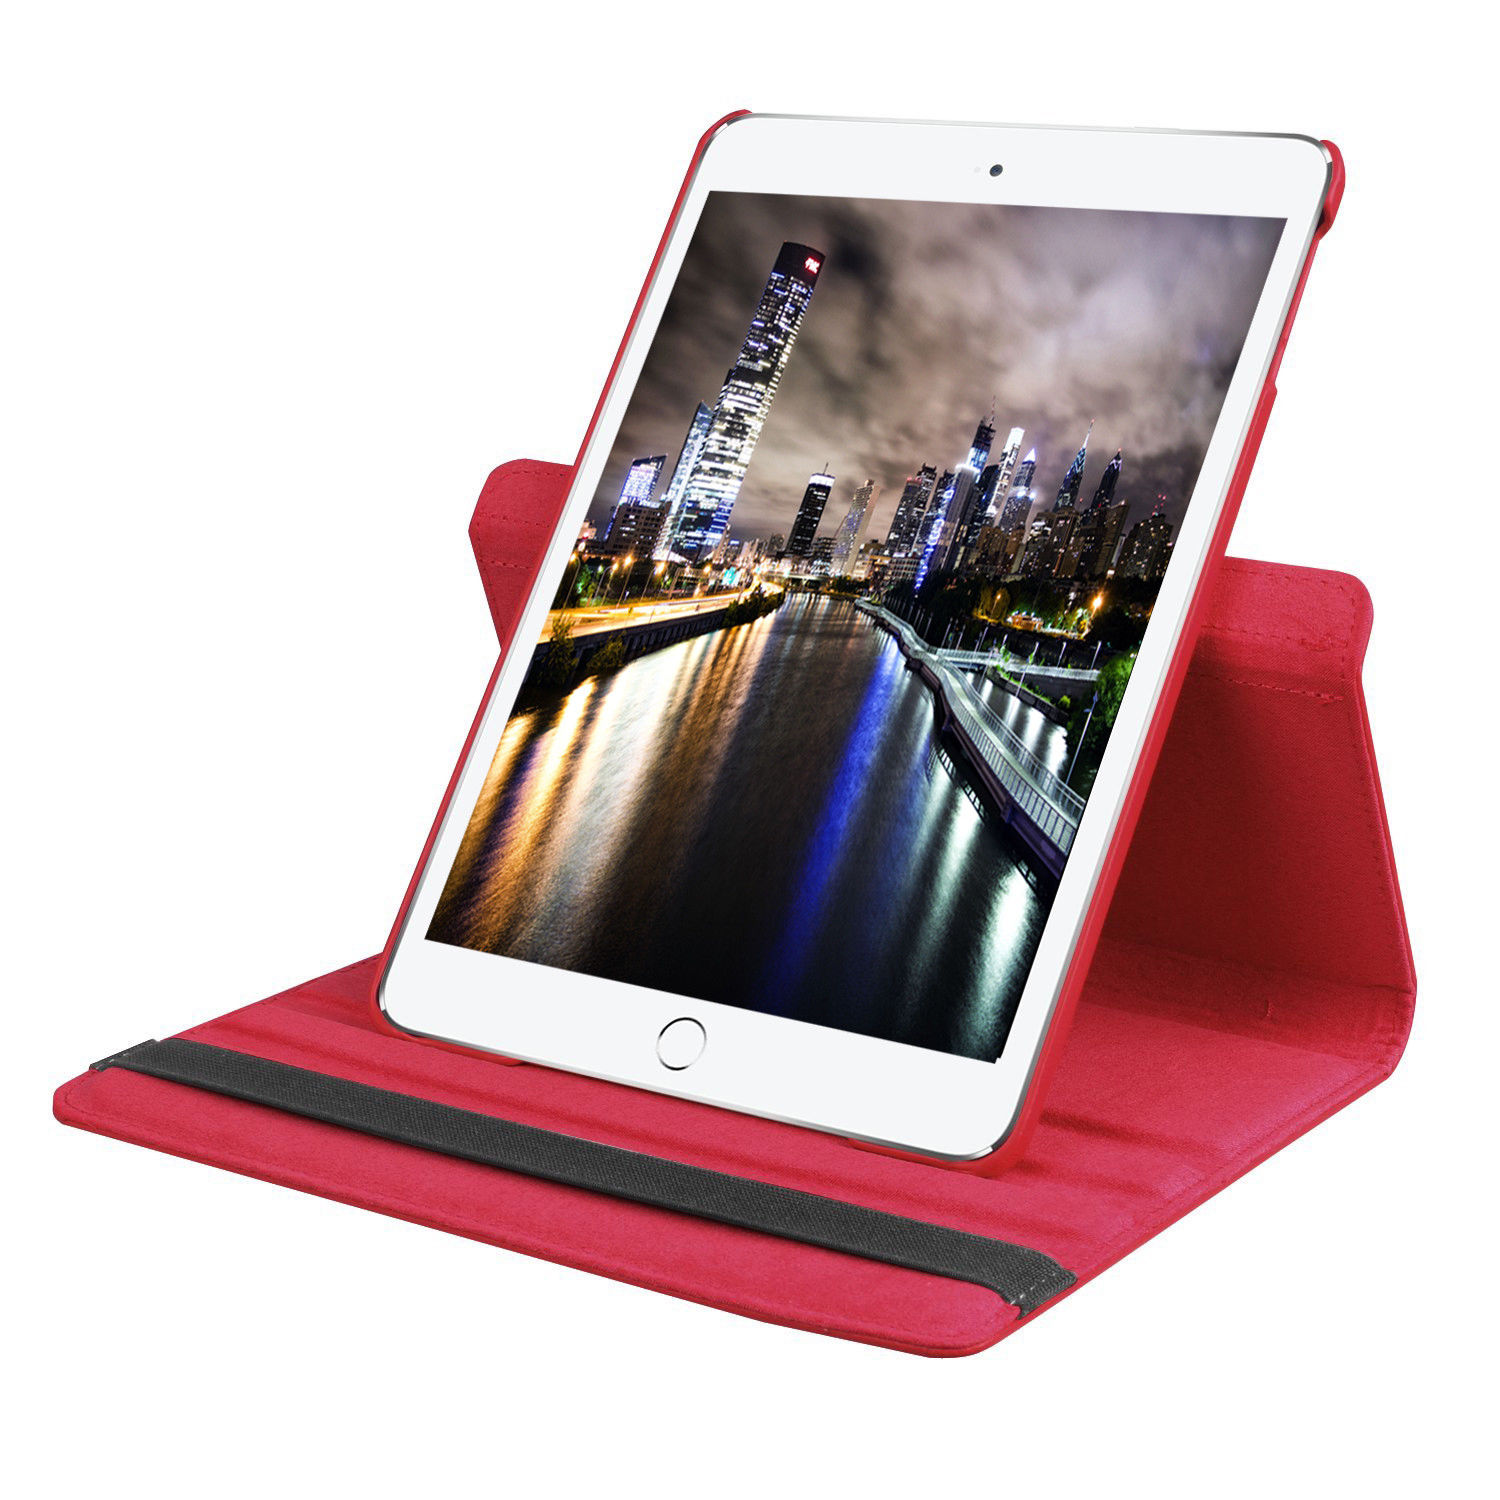 Custodia-per-Apple-iPad-Pro-2017-iPad-Air-3-10-5-Smart-Cover-Case-Custodia-Protettiva miniatura 29